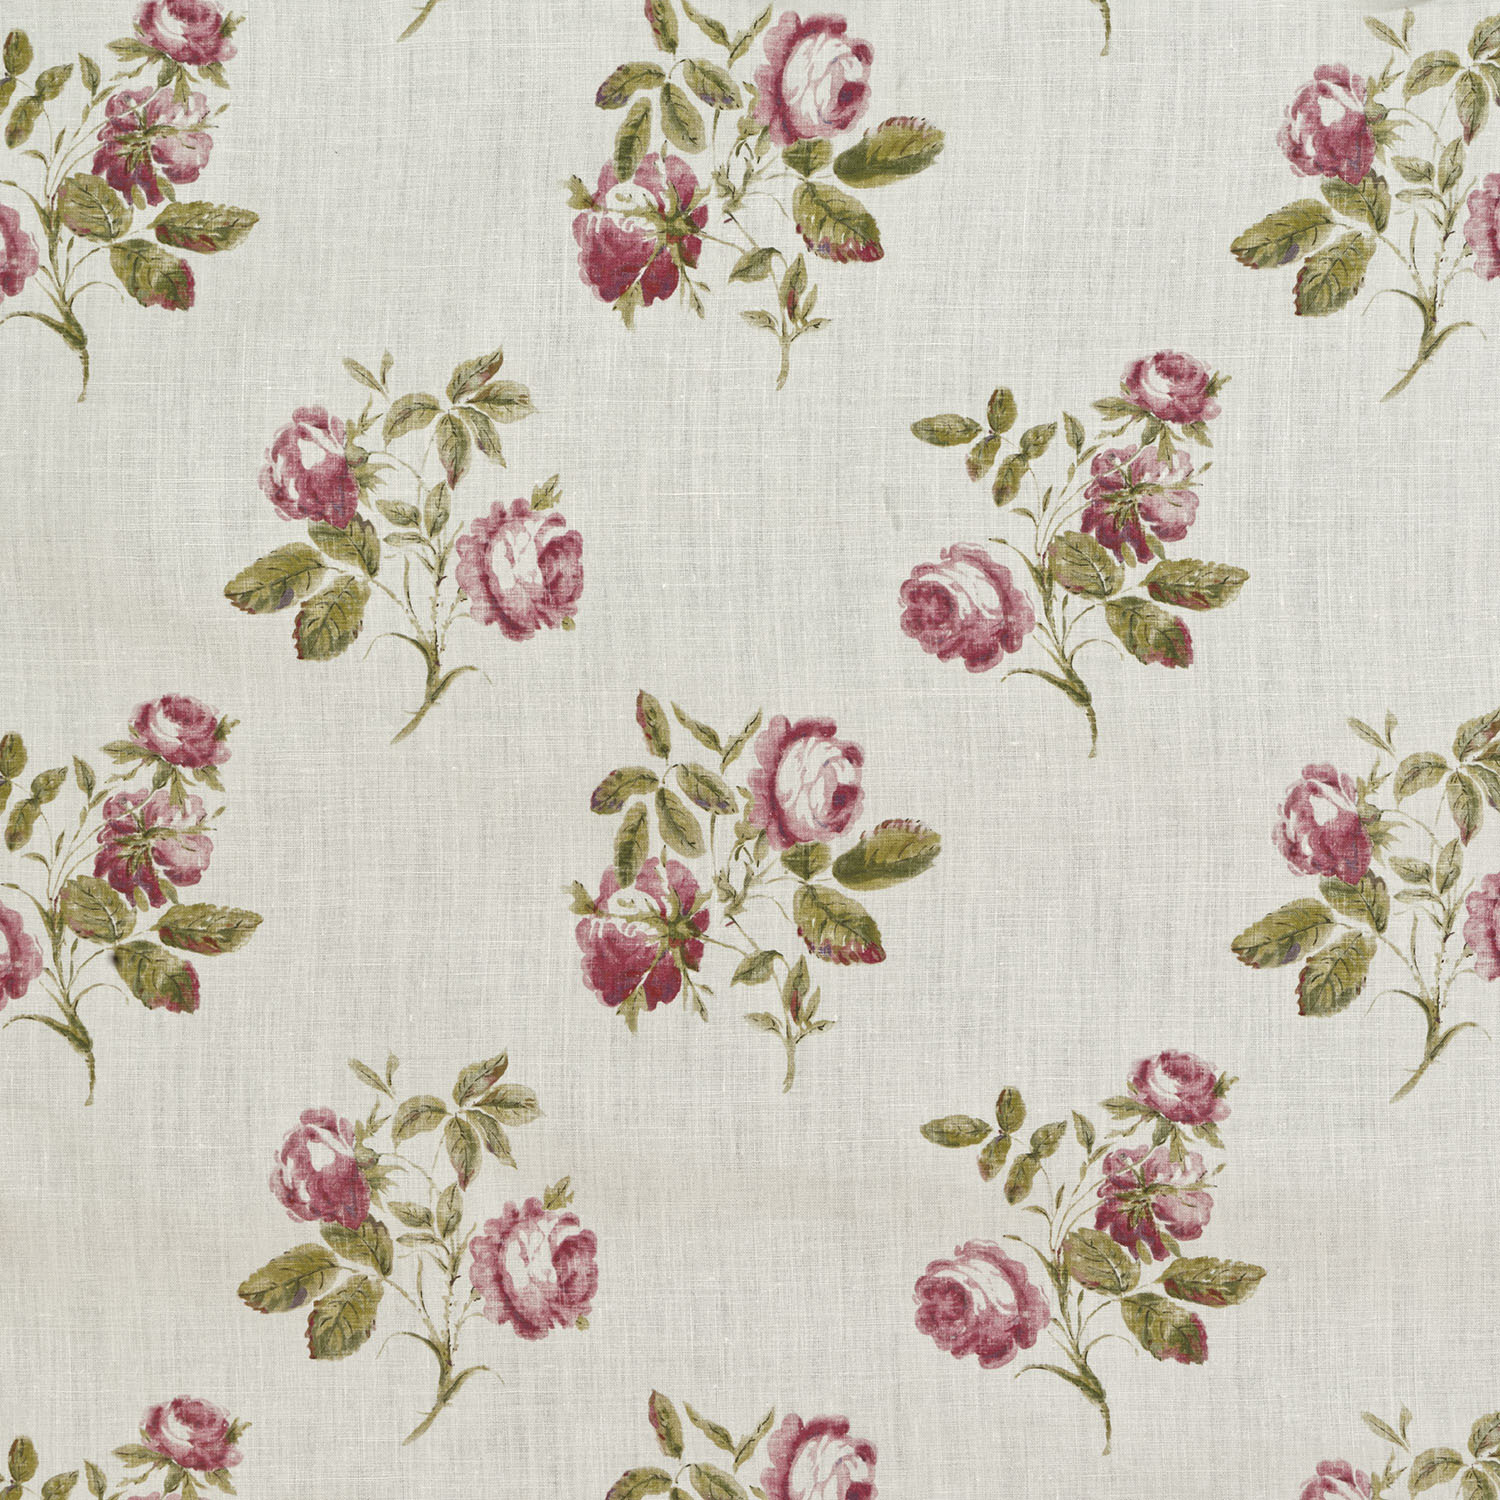 <p><strong>SIMSBURY</strong>rose/green 1510-01<a href=/the-winthorp-collection/simsbury-rose-green-1510-01>More →</a></p>